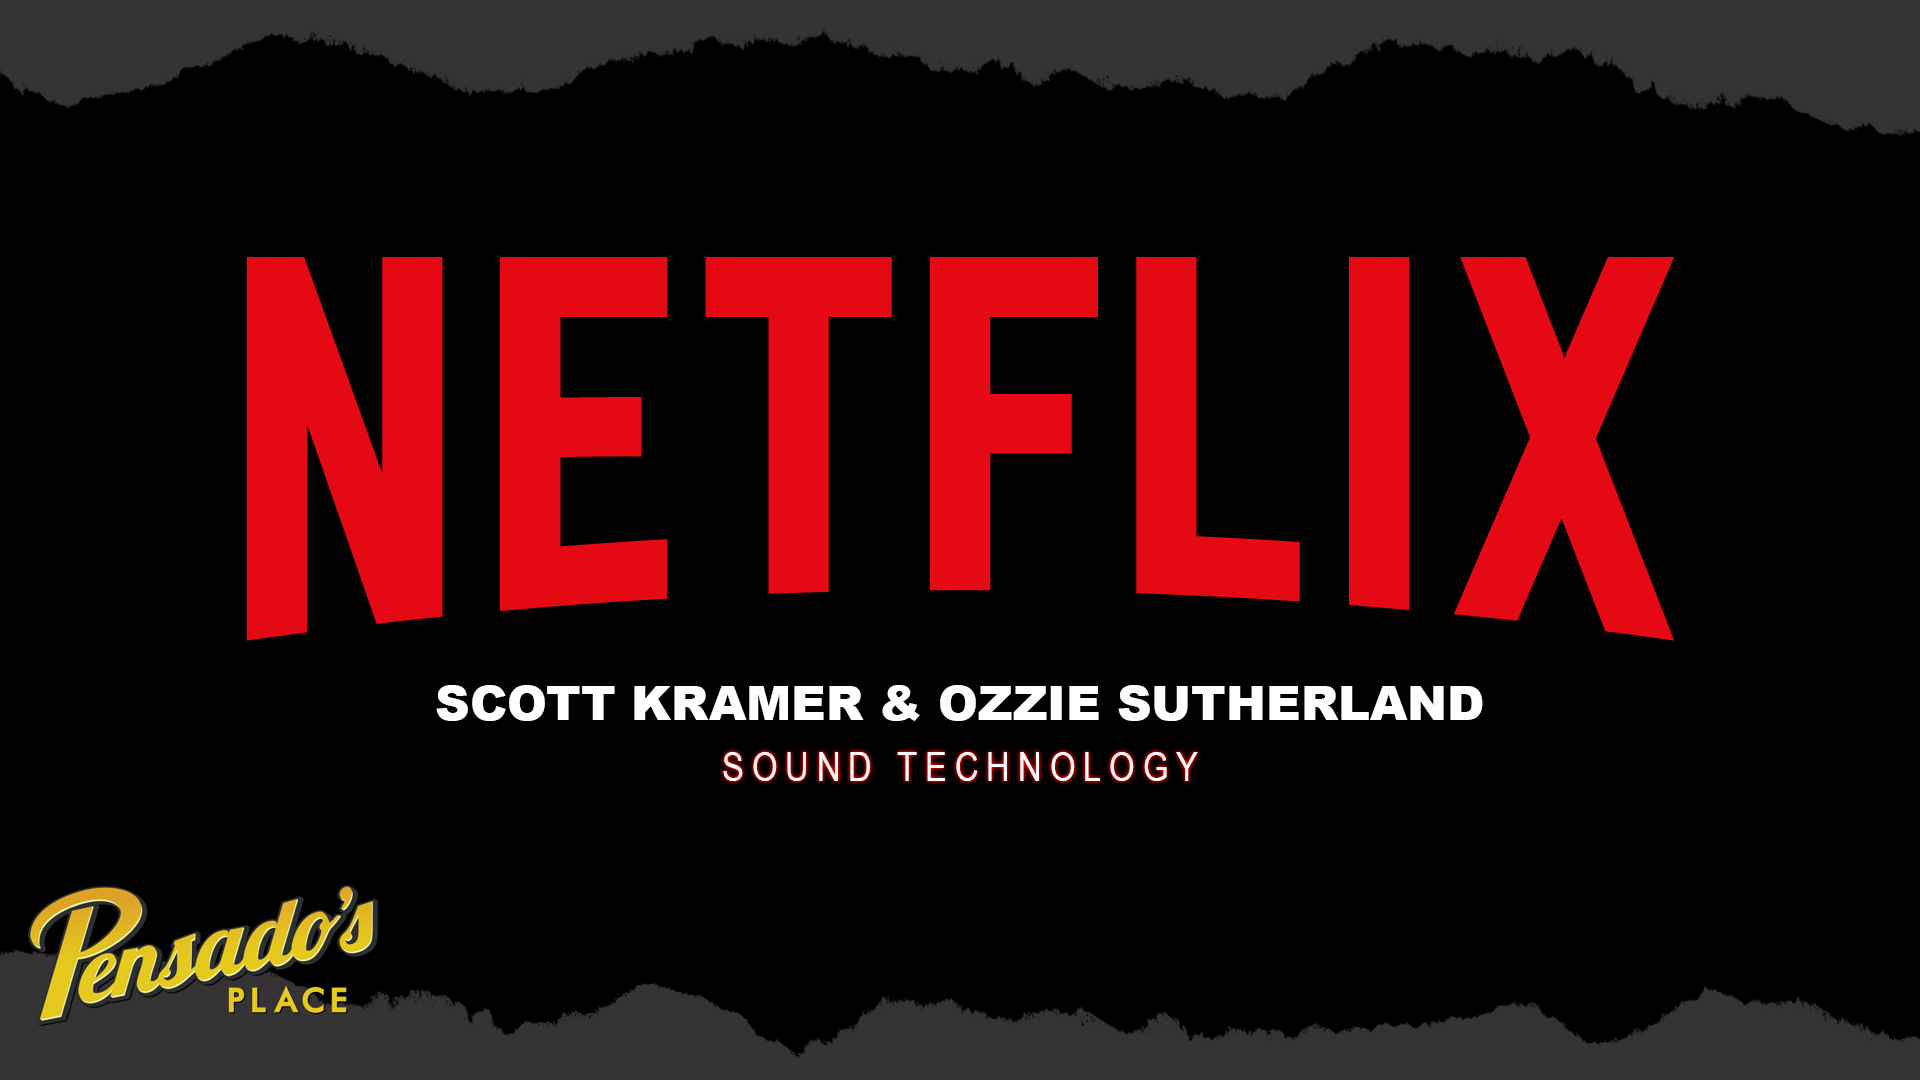 Netflix Creative Technologies & Infrastructures Sound Technology Team